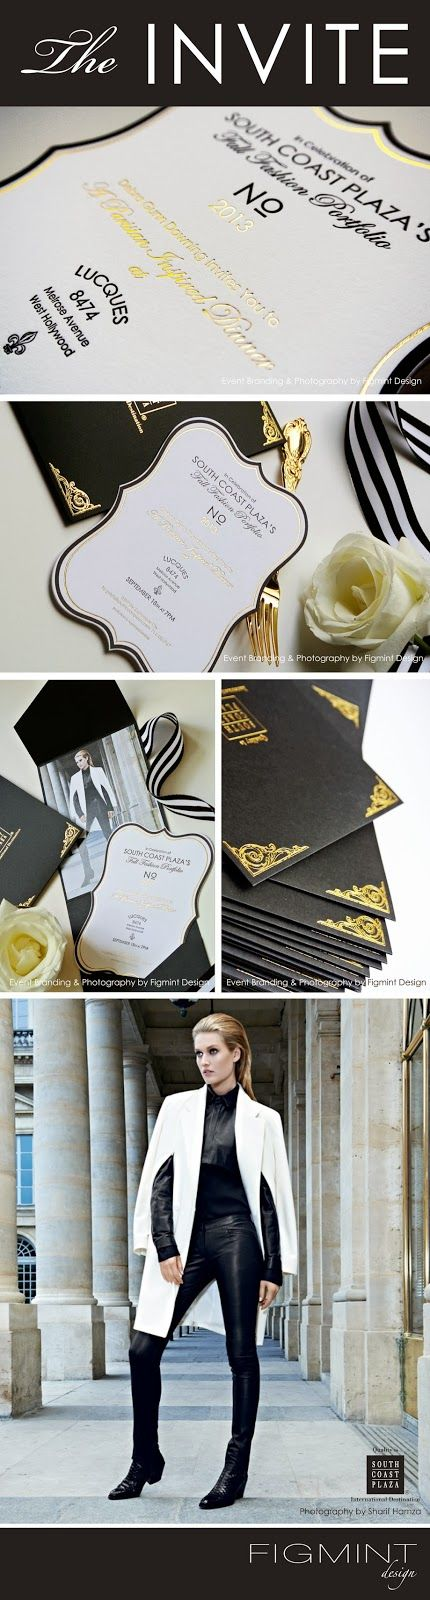 25 best ideas about event invitation design on pinterest for Letterpress wedding invitations gold coast